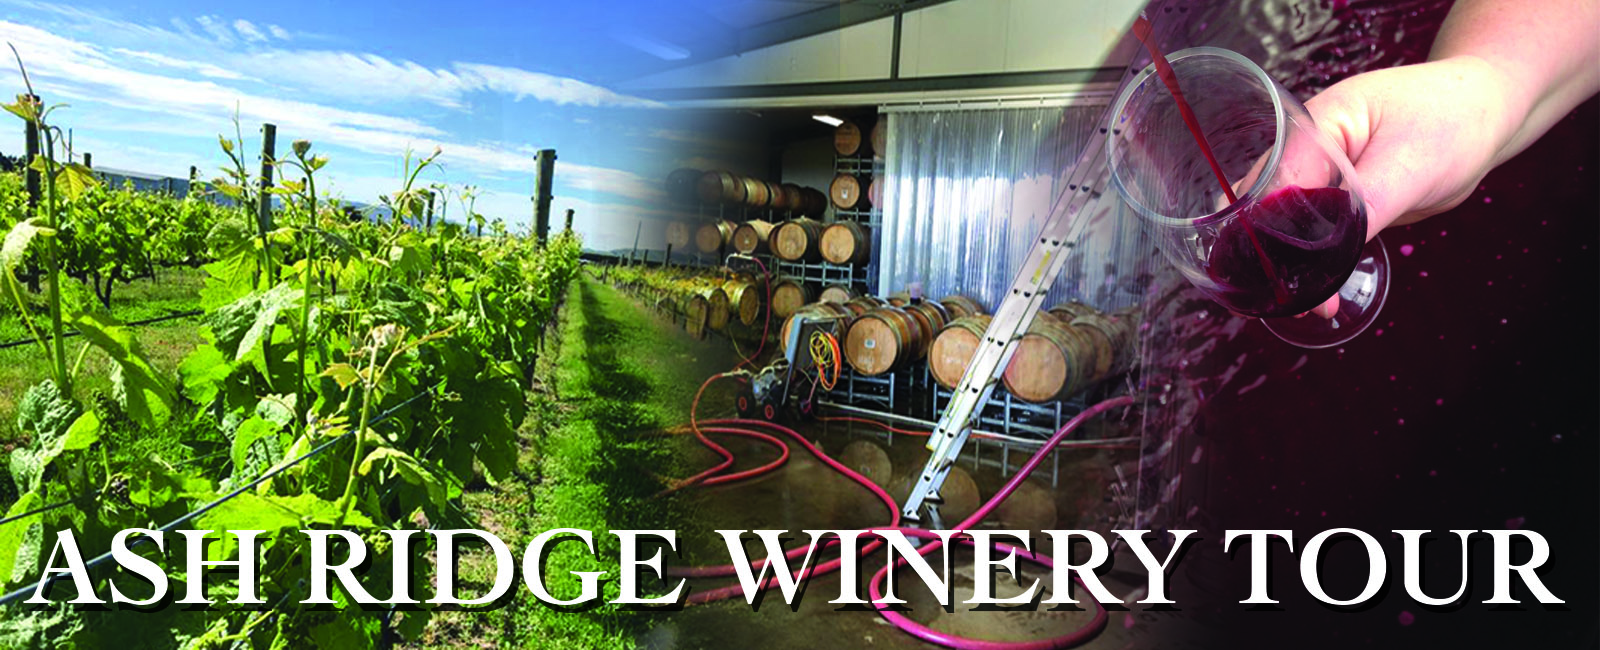 Ash Ridge Winery Tours